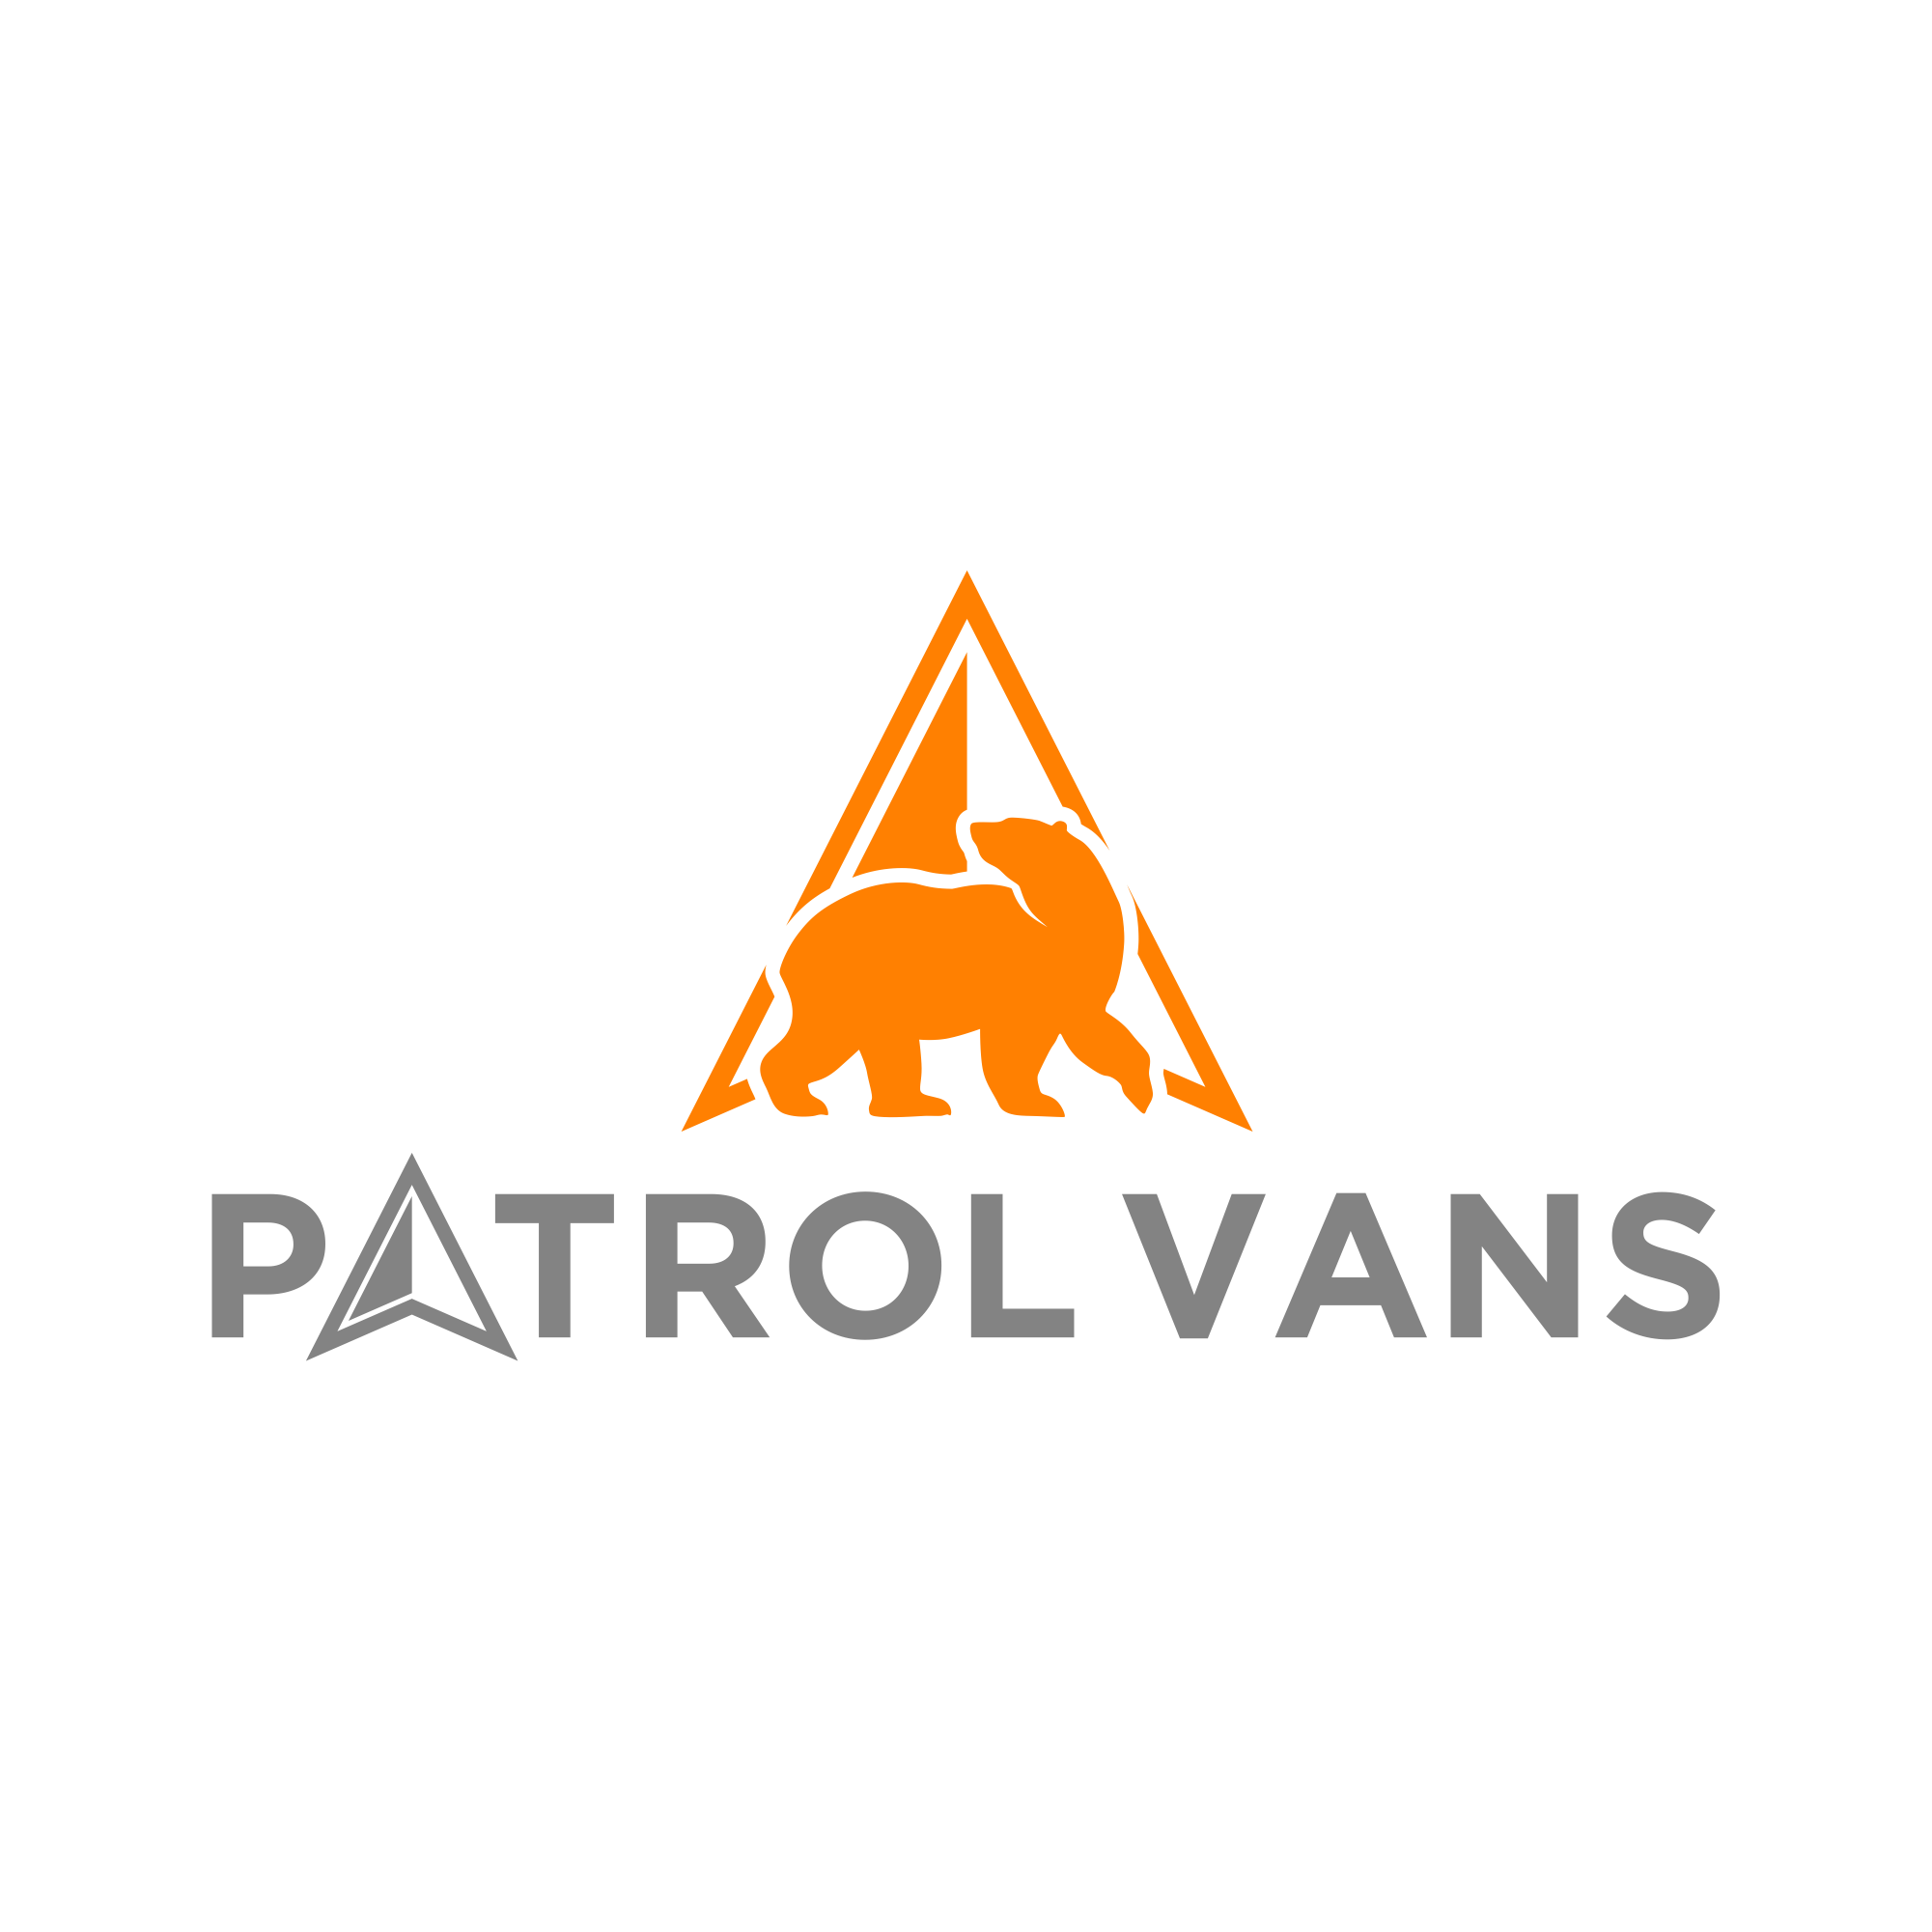 Exciting new lifestyle adventure van builder specializing in off grid living and no limit travel!